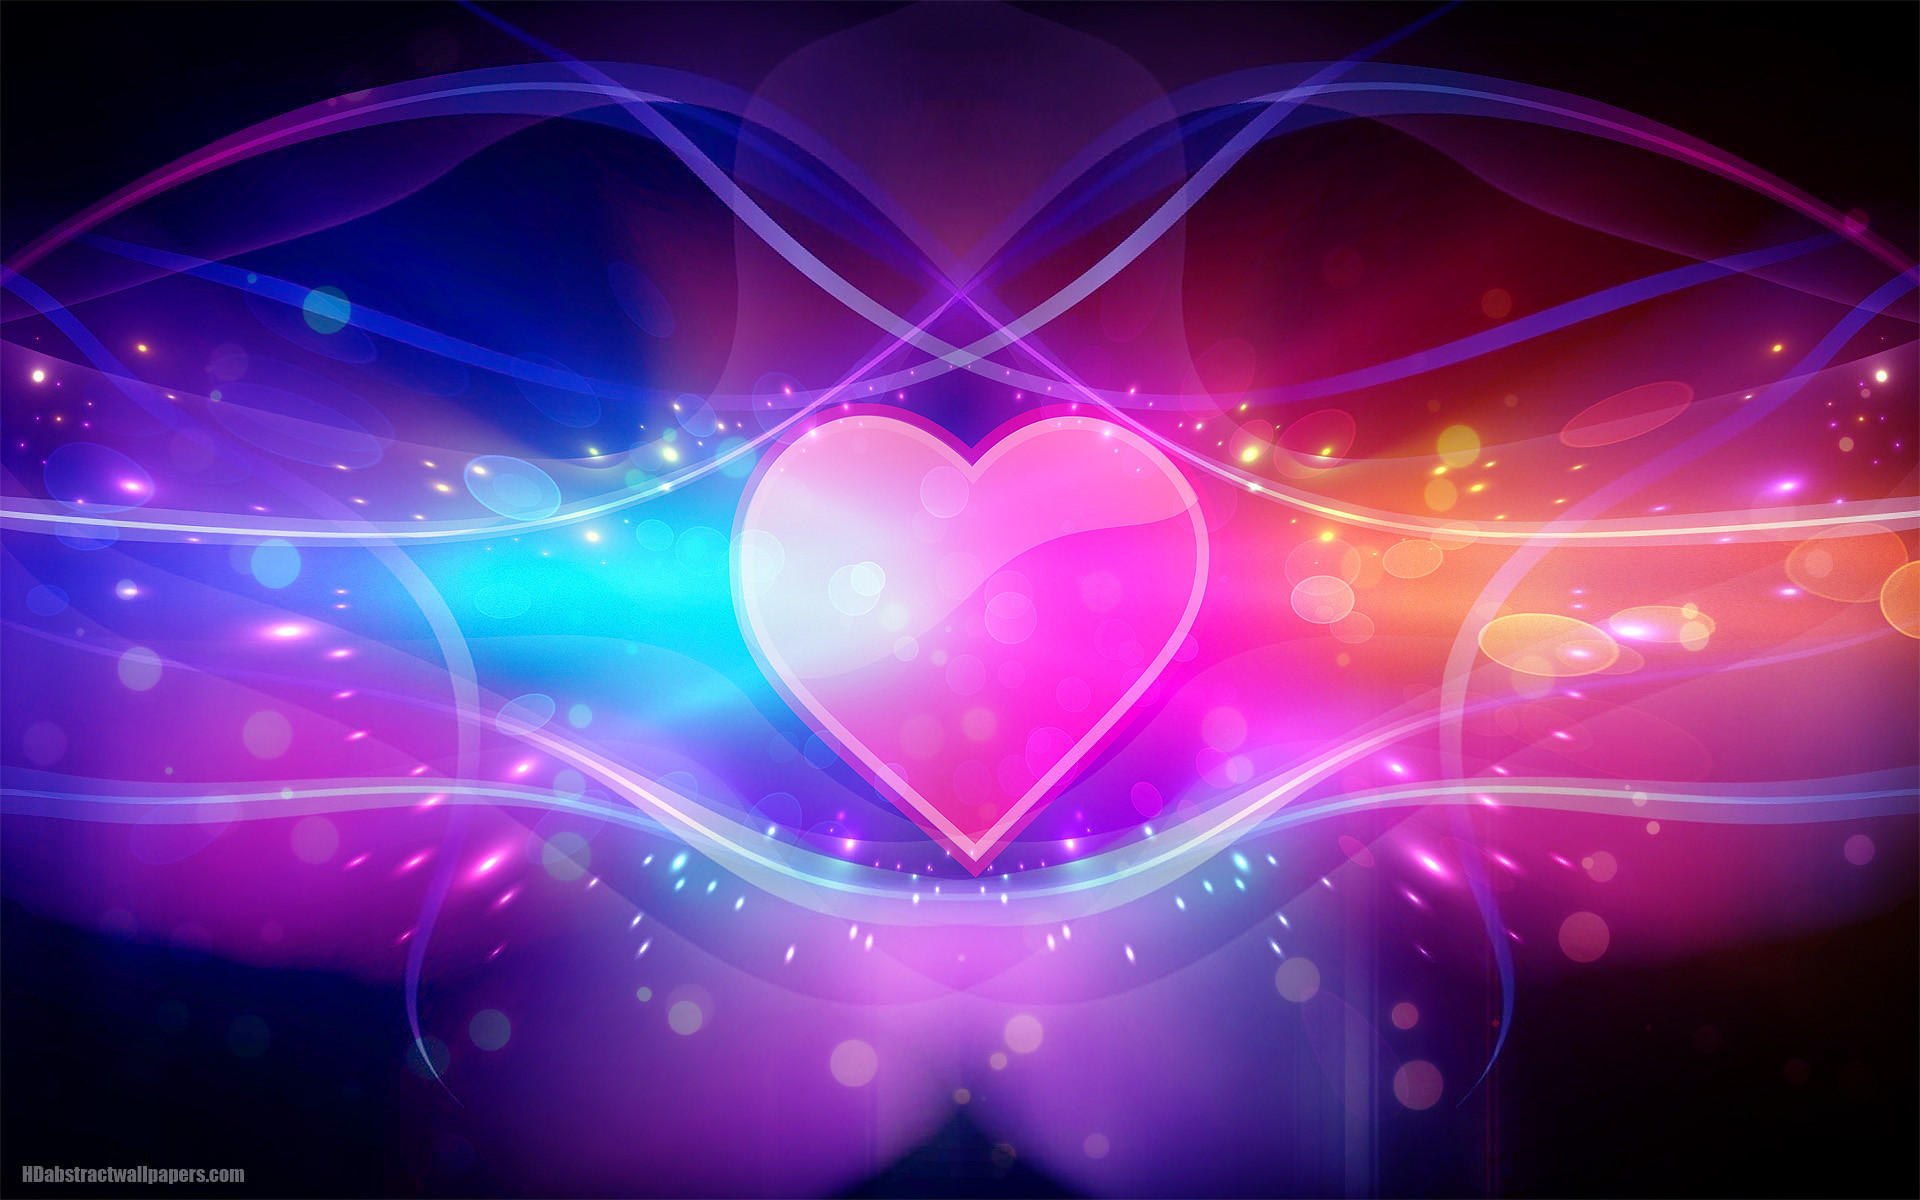 1920x1200 Colorful abstract wallpaper with pink love heart